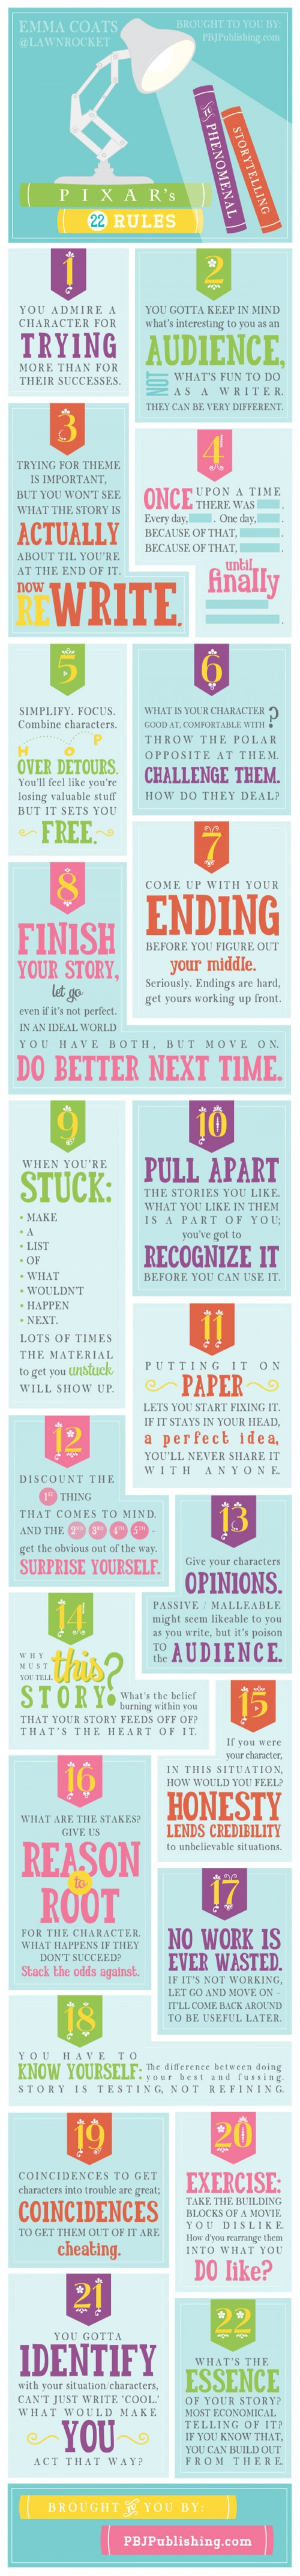 Storytelling infographic - pixar - novel conclusions - Christi Gerstle - good writing - writing tips